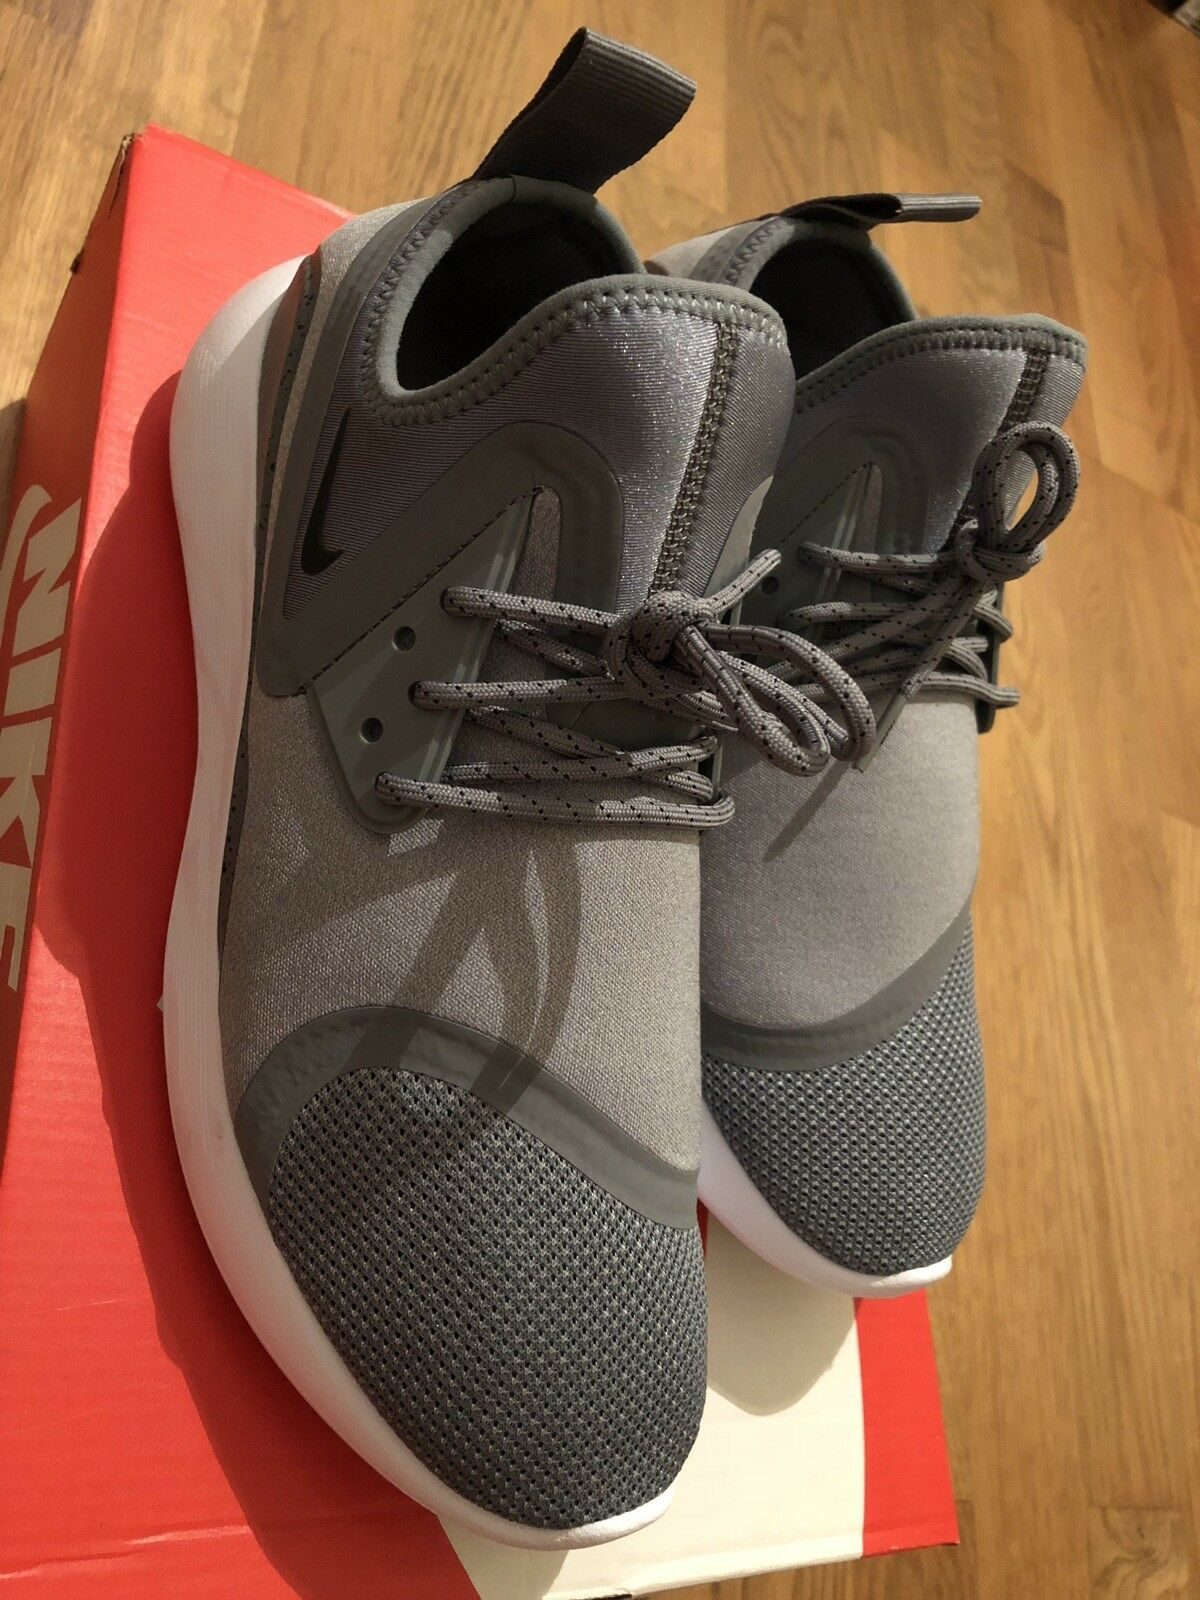 a1f790d3e1 NIKE LUNARCHARGE ESSENTIAL TRAINERS NEW MEN'S SIZE 9 COOL GREY BLACK WOLF  GREY